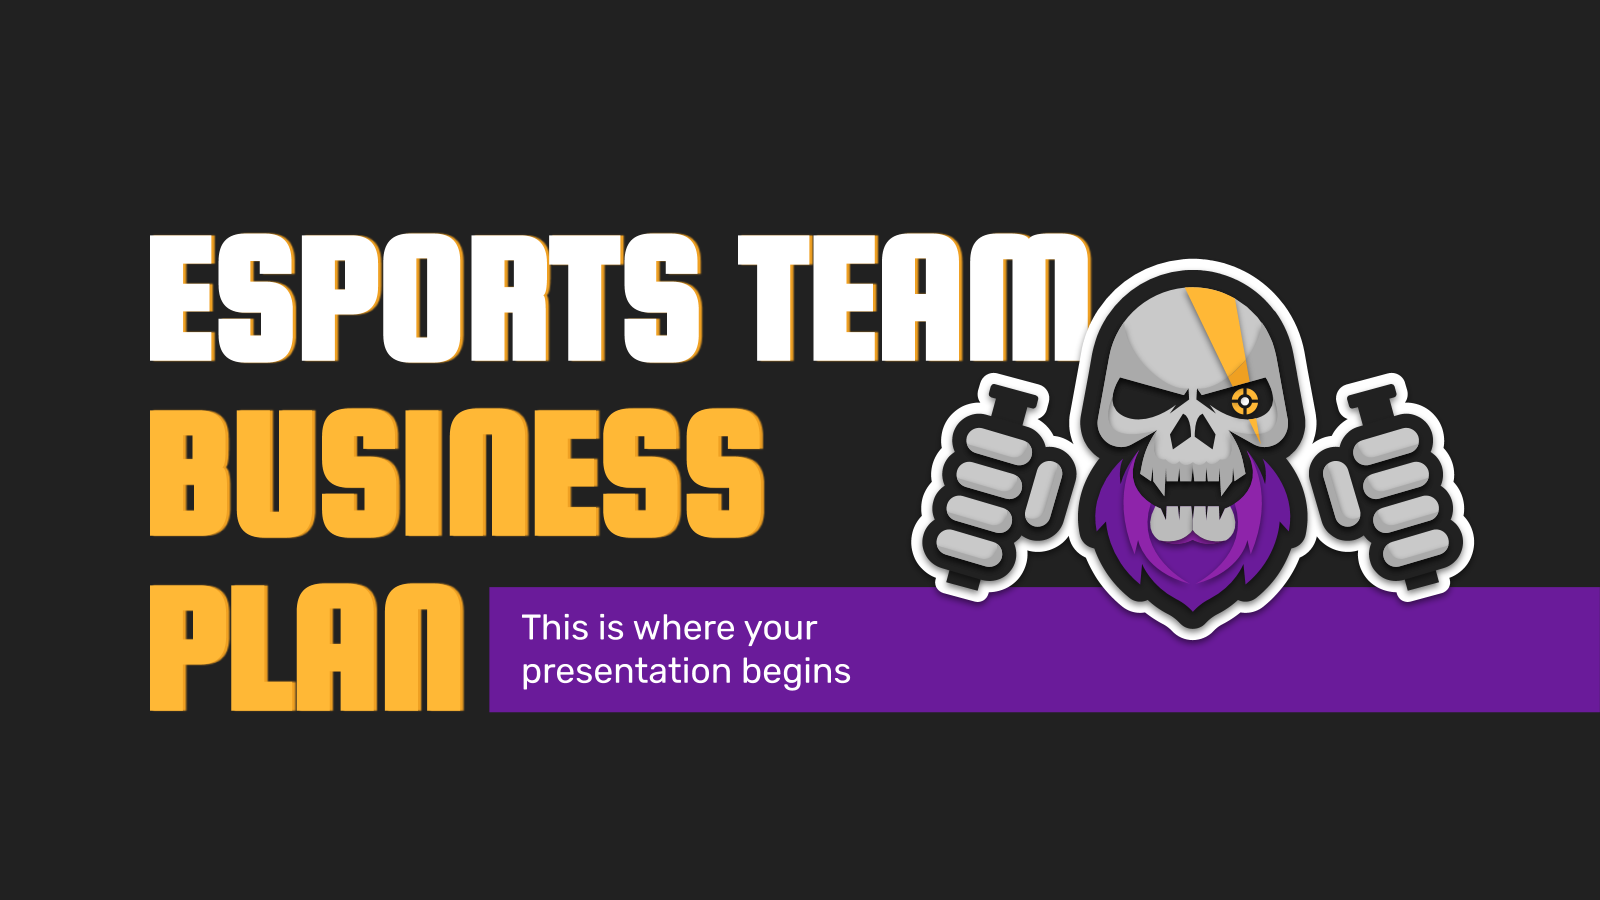 Esports Team Business Plan presentation template